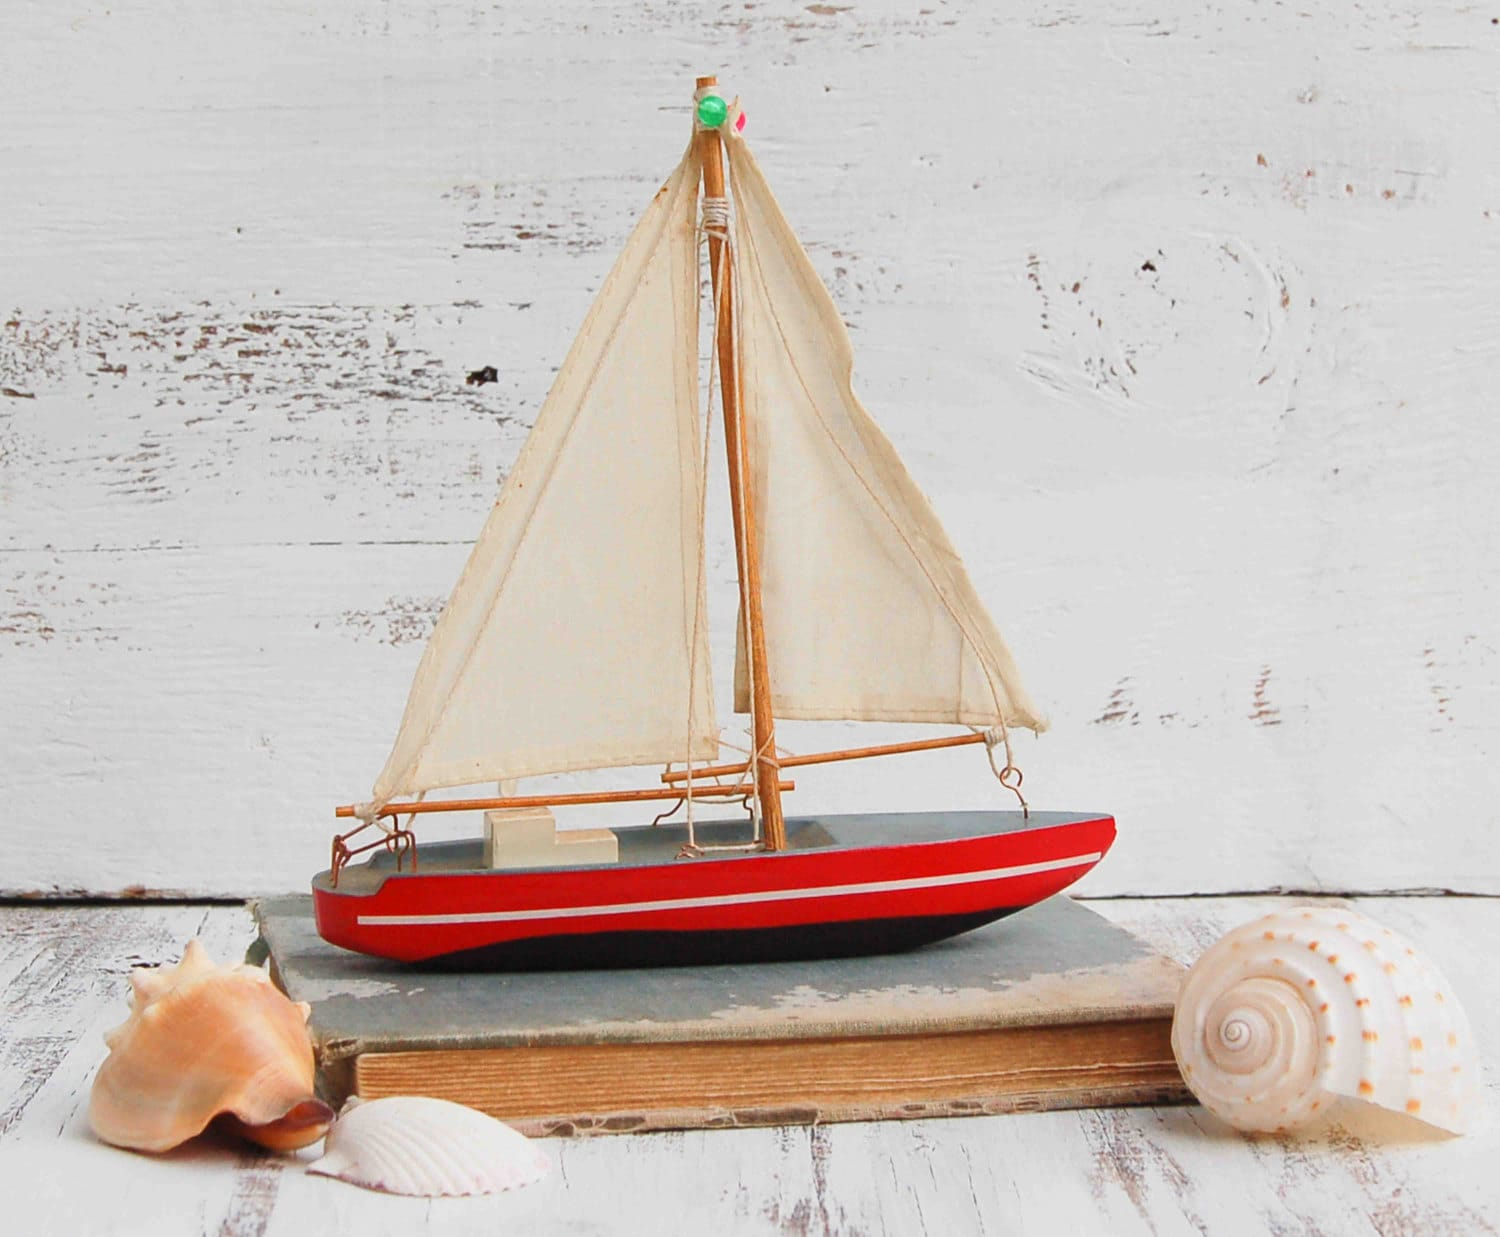 Vintage toy wooden boats